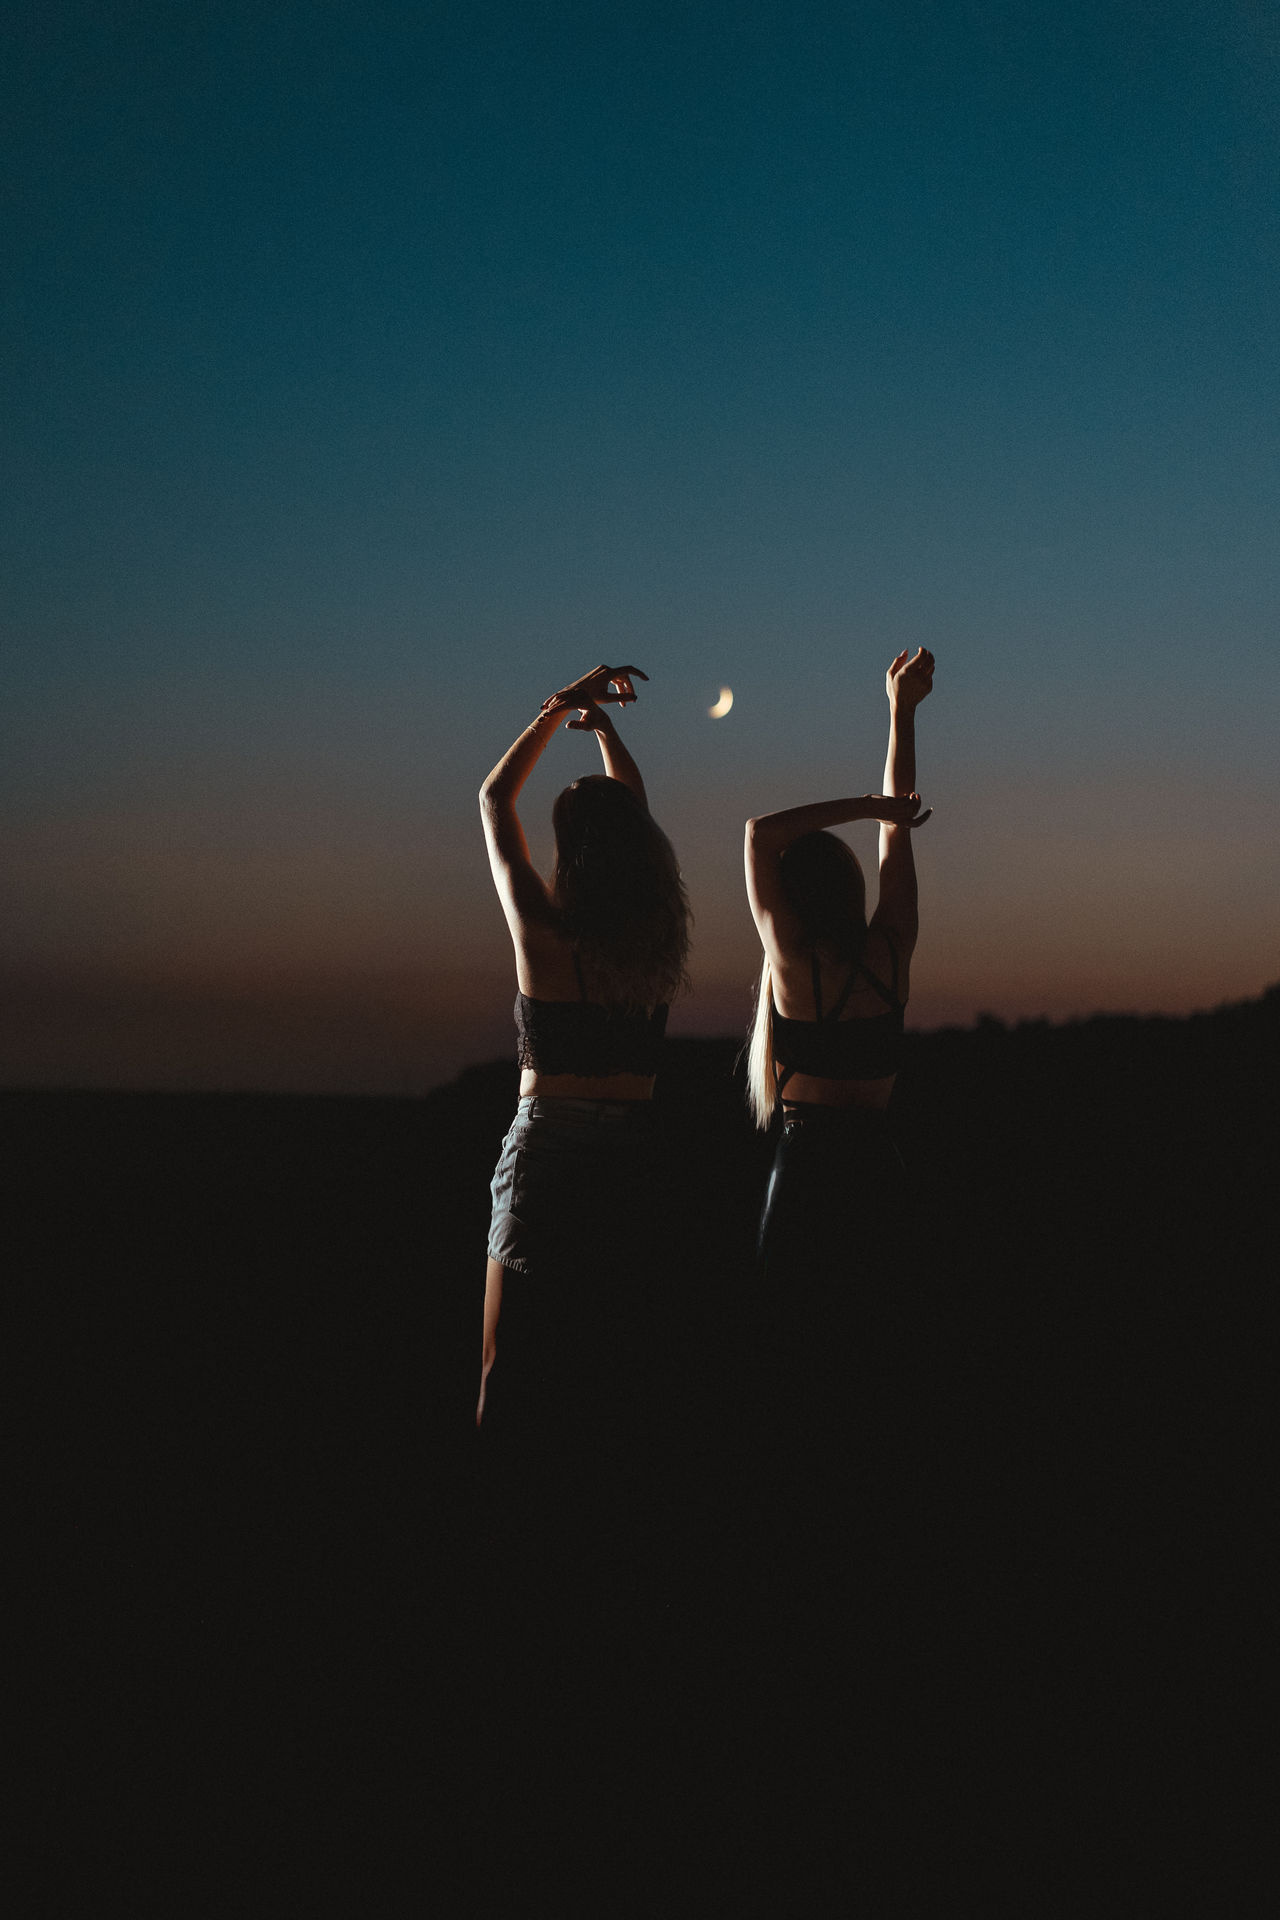 Silhouette women with arms raised against sky during dusk